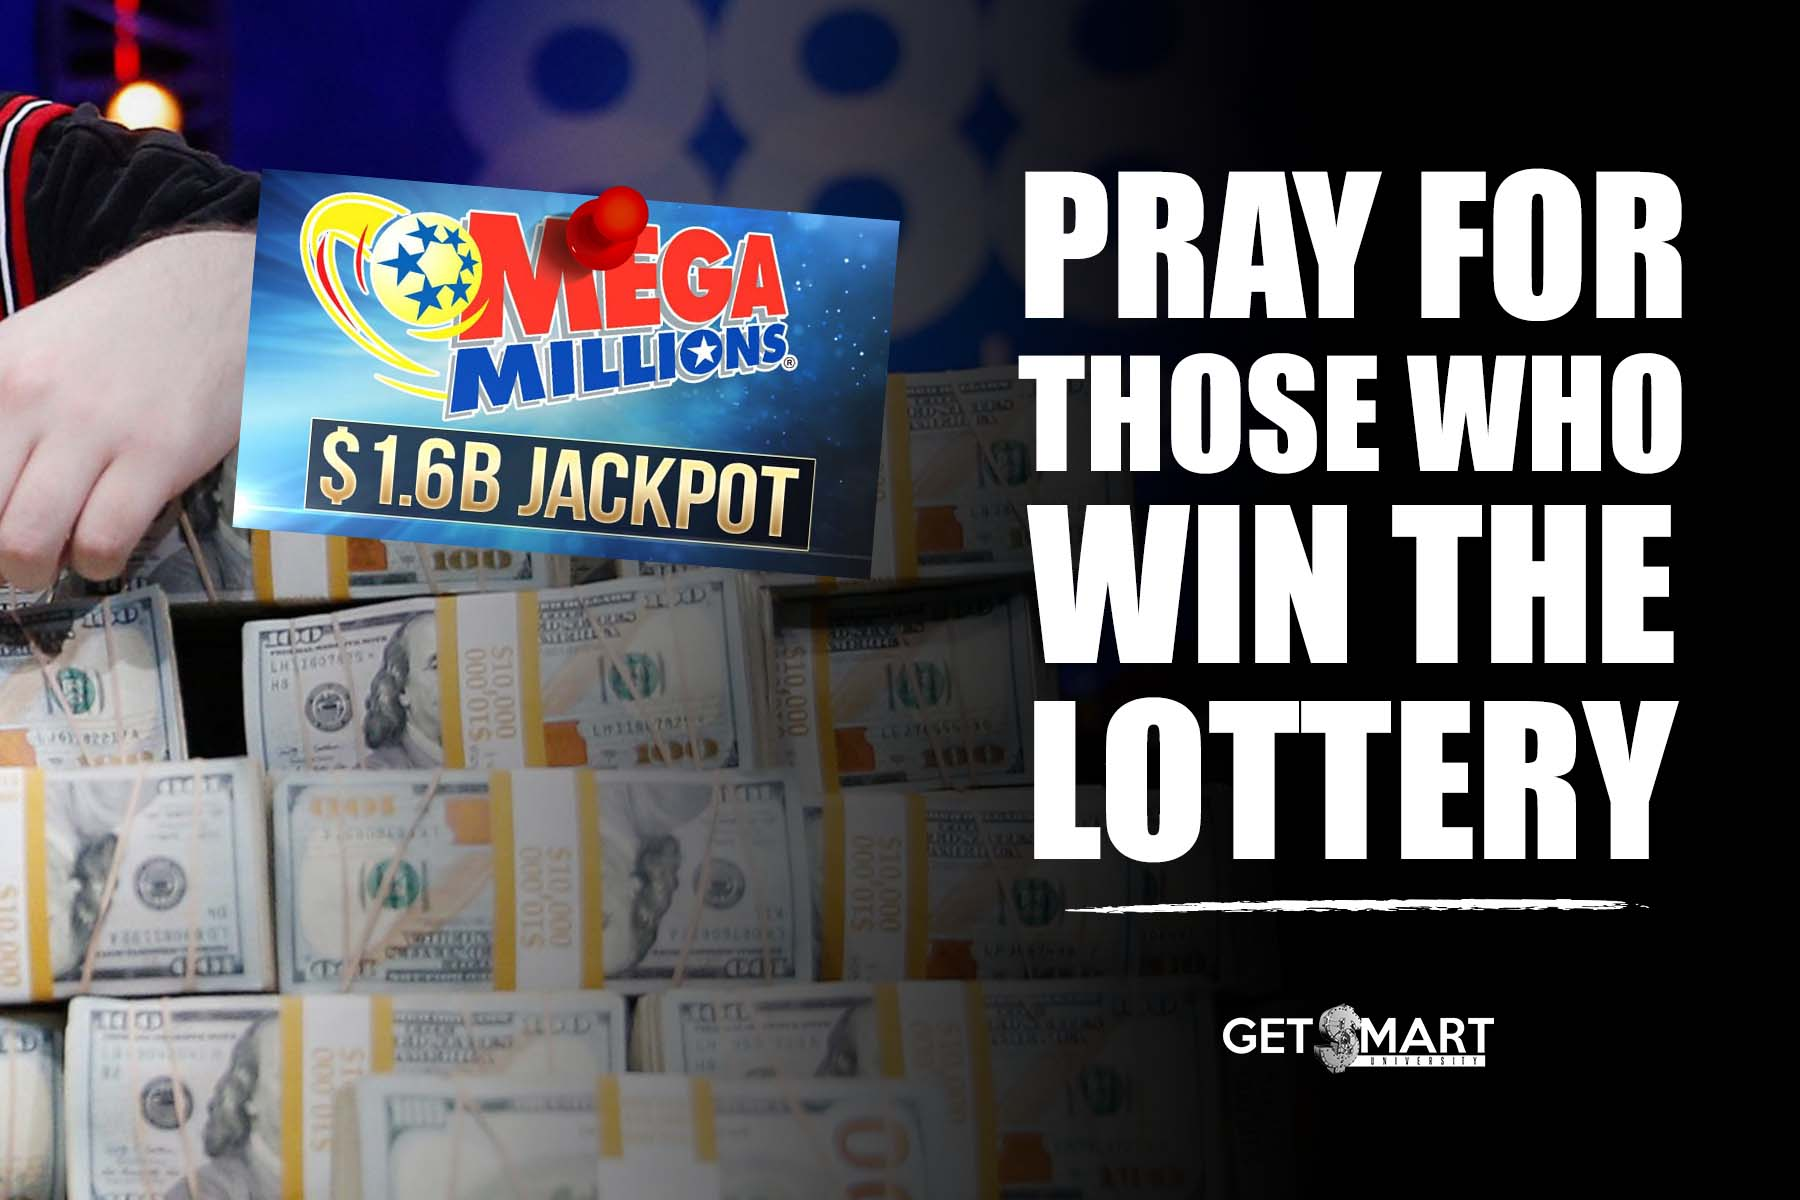 Pray for those who win the lottery…